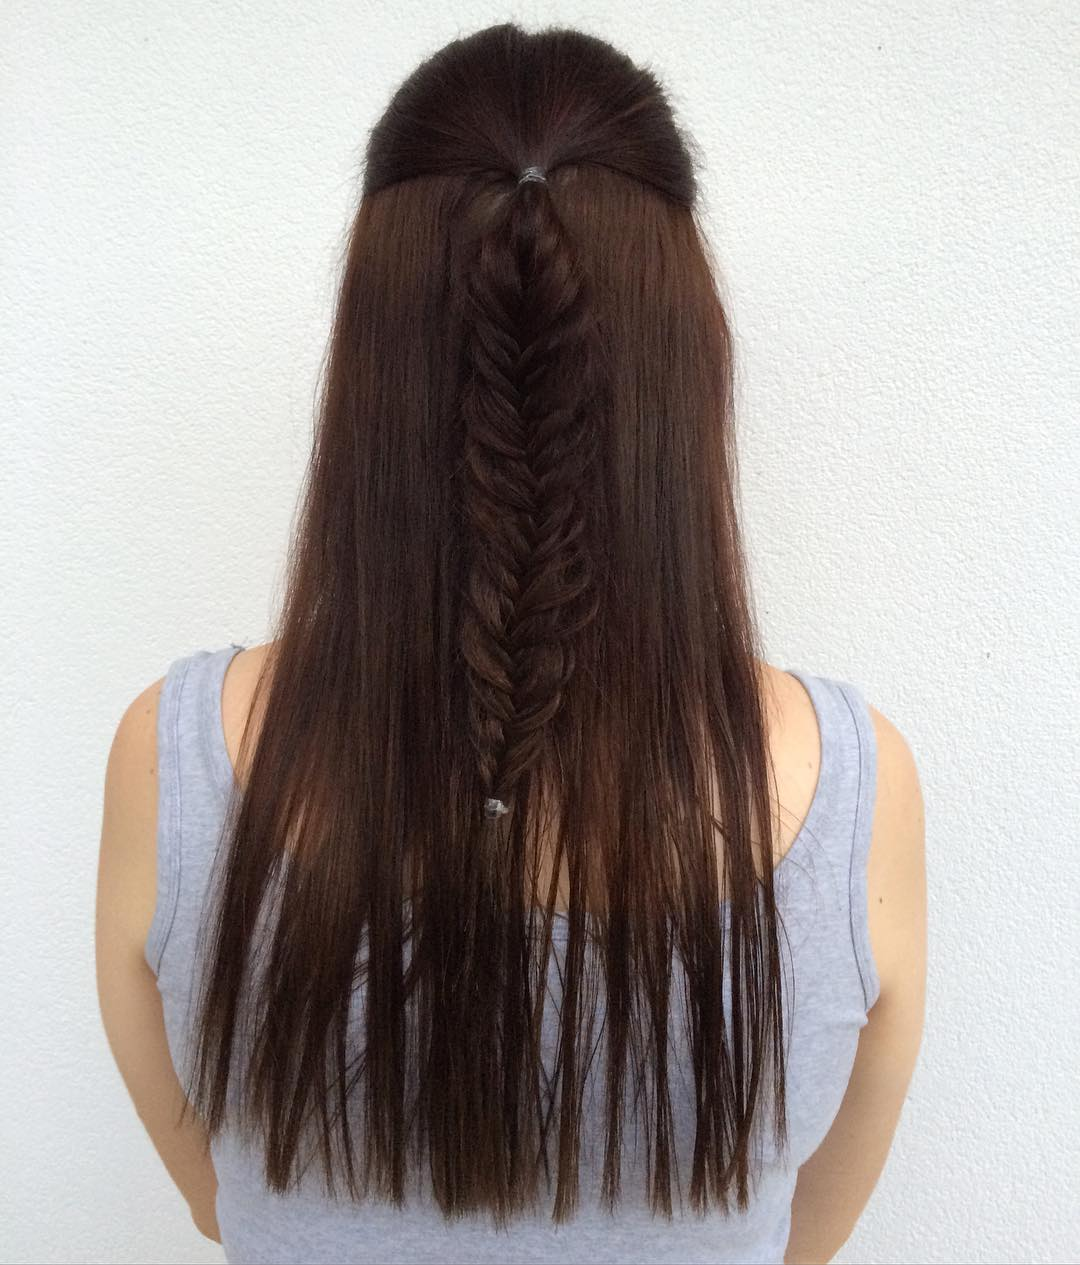 Silky-Soft Formal Hairstyle for Long Hair